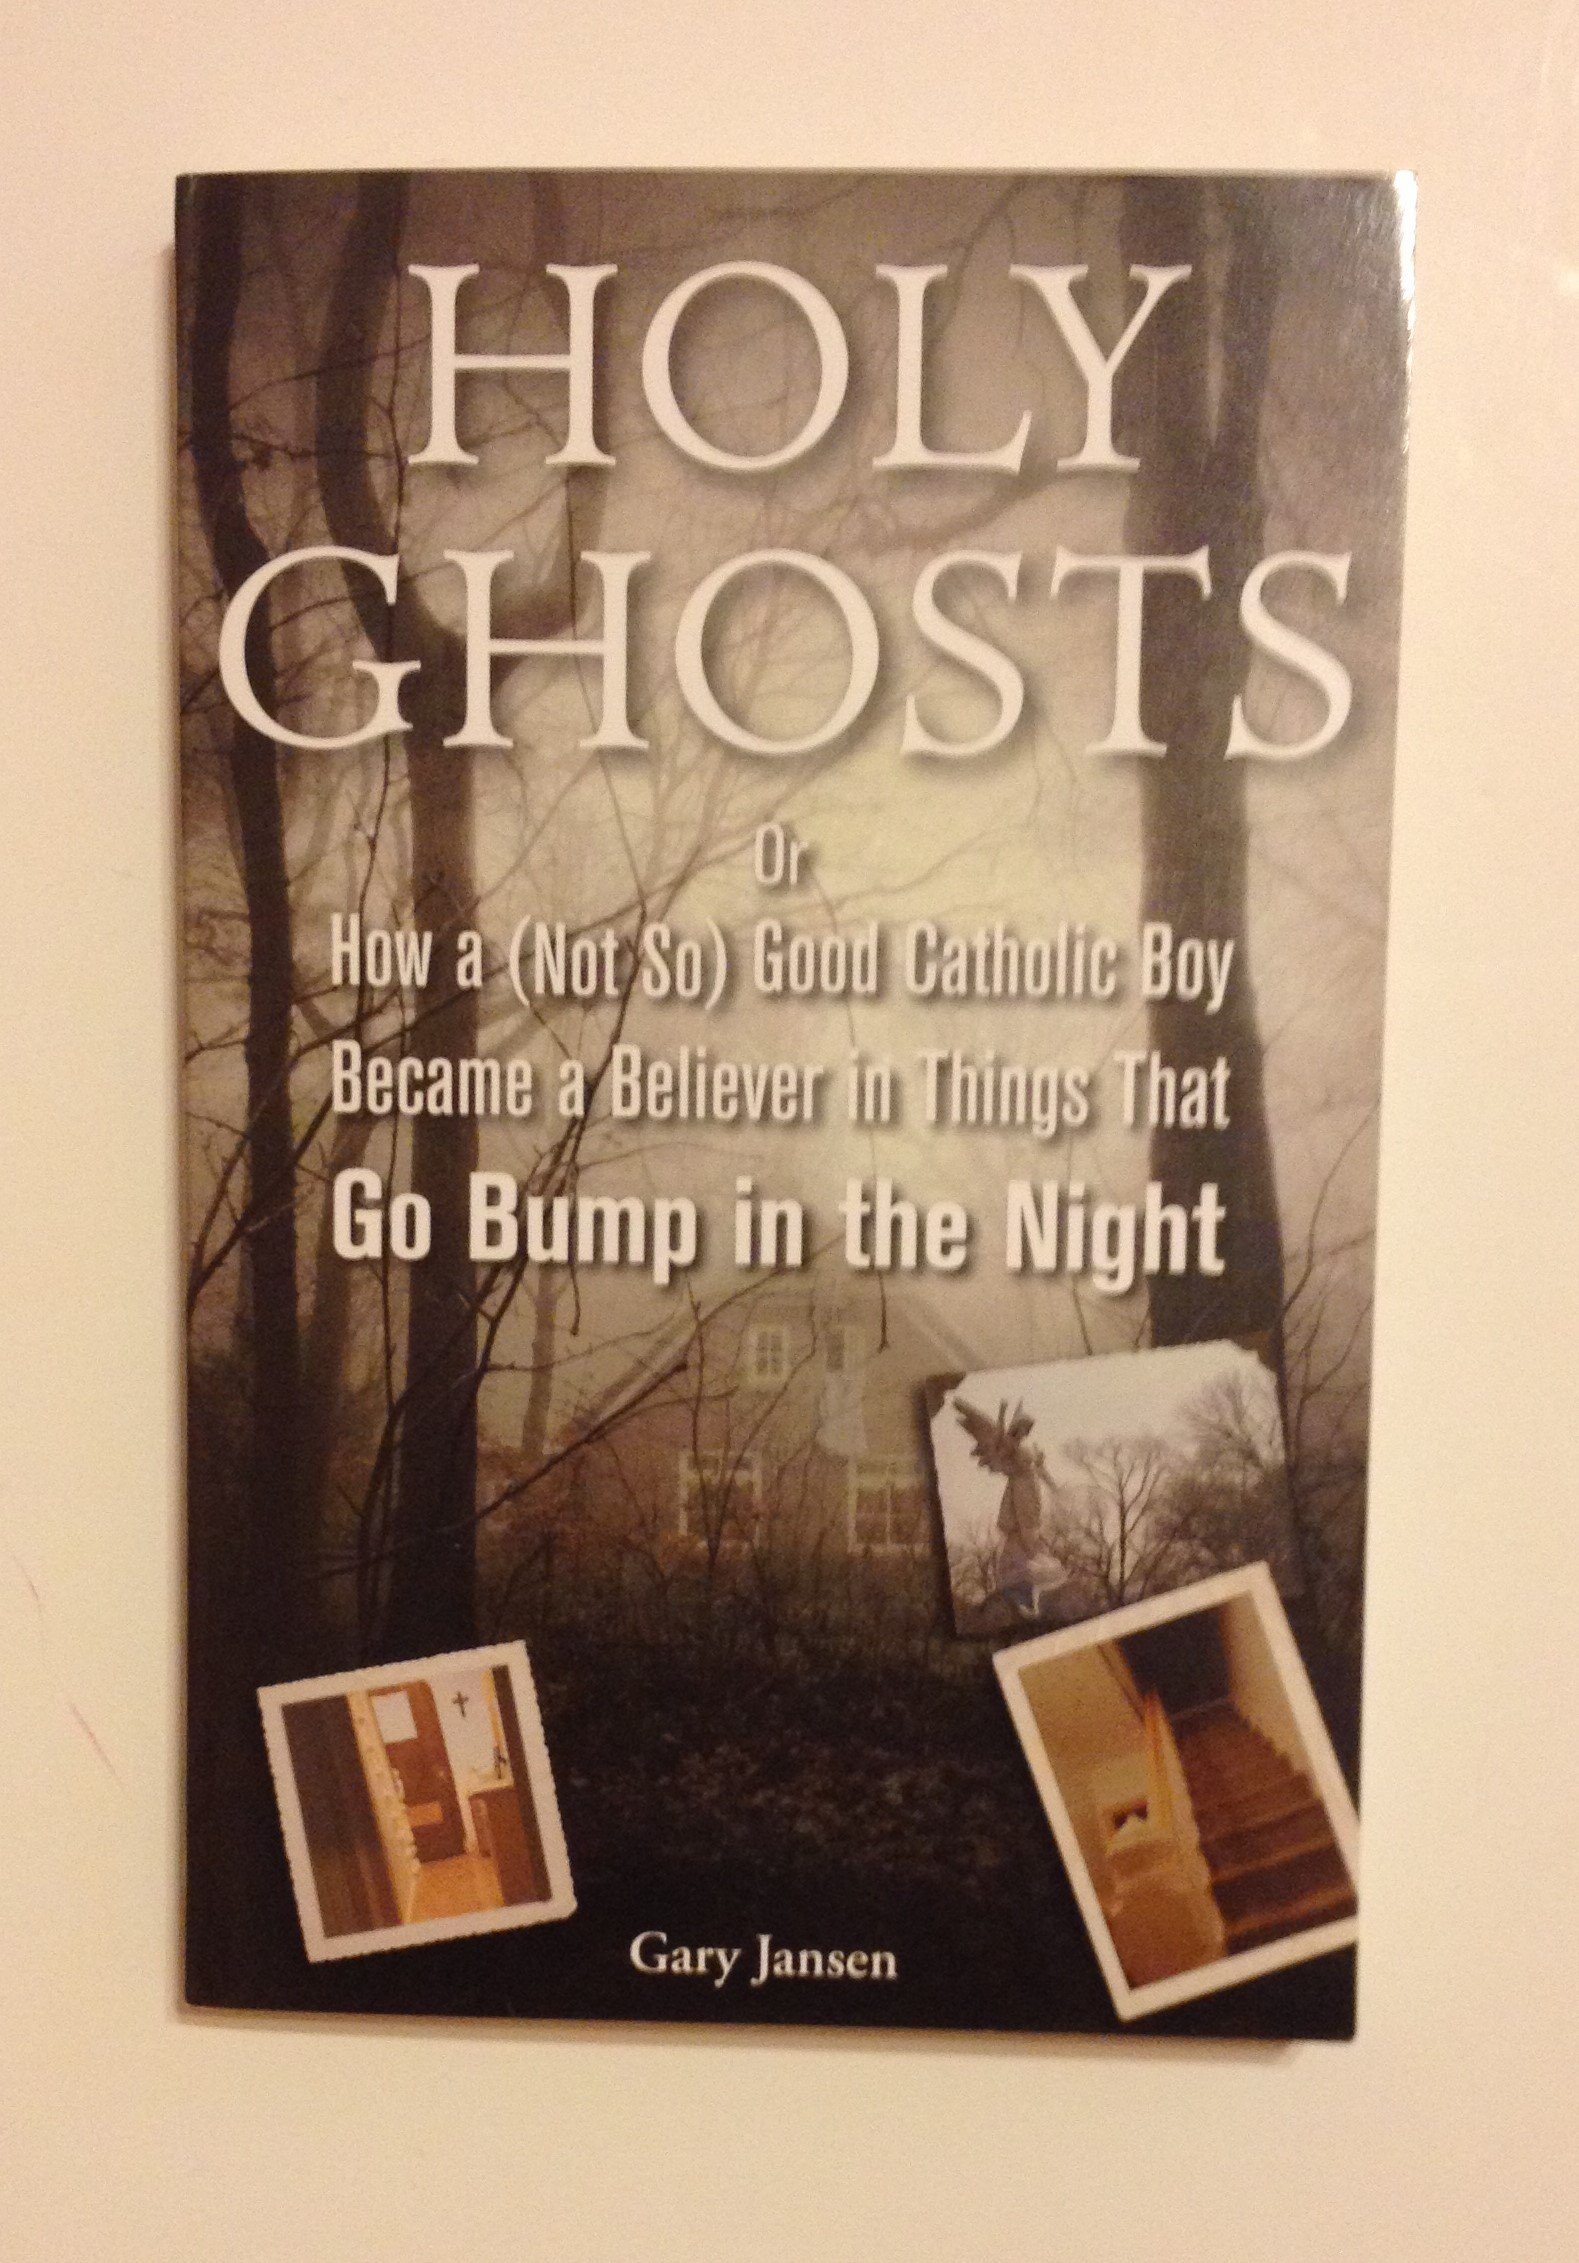 Holy Ghosts or How a (Not So) Good Catholic Boy Became a Believer in Things That Go Bump in the Night: 9781611294224: Amazon.com: Books